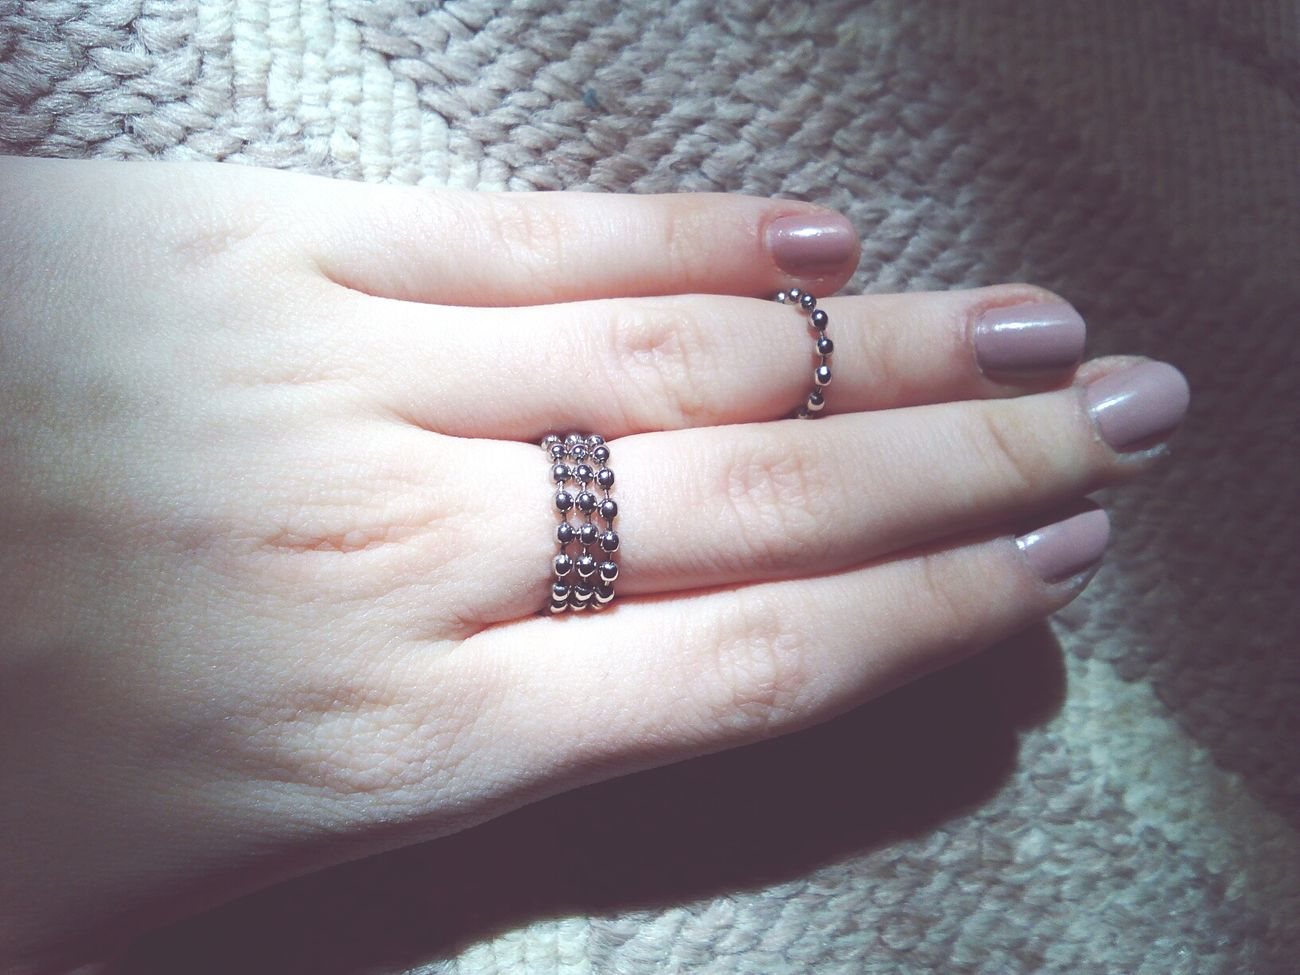 sometimes i just dream a day dream but bigger and more beautiful Human Hand Human Body Part One Woman Only One Person Ring Close-up Nail Art People Adults Only Adult Jewelry Day